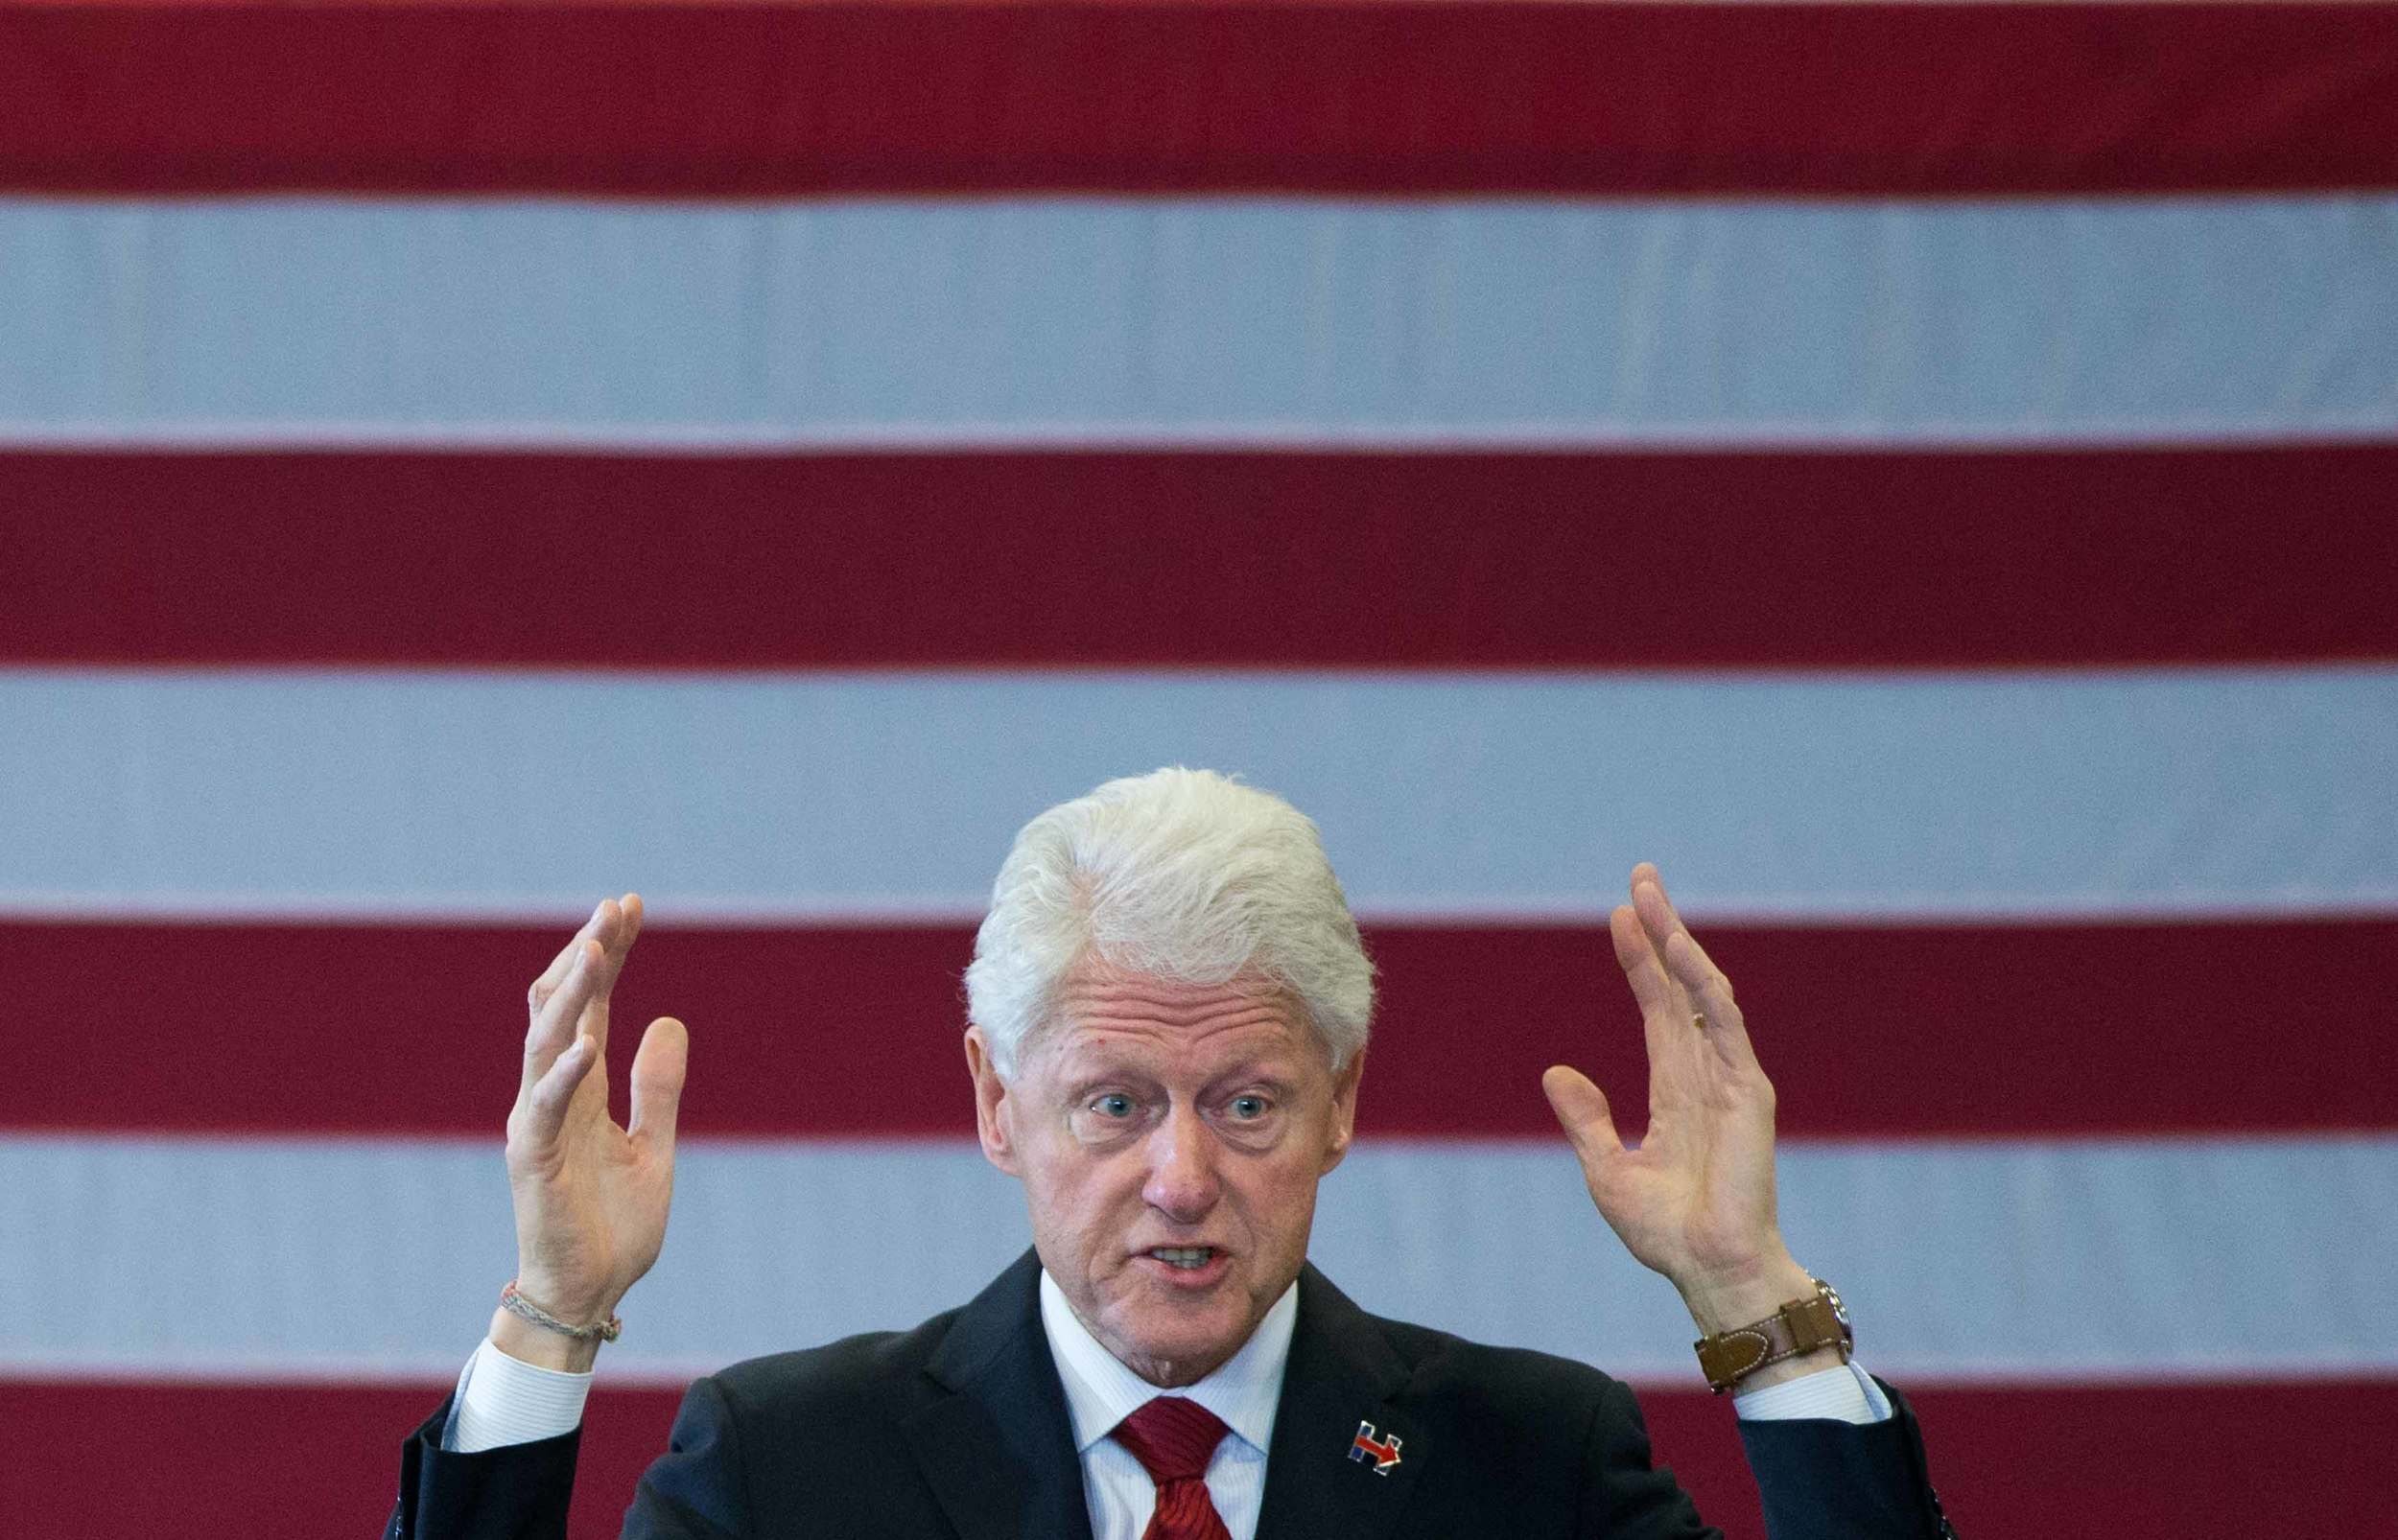 Former President Bill Clinton campaigns for his wife, Democratic presidential candidate Hillary Clinton, at North Clayton High School. Branden Camp/ZUMA wire